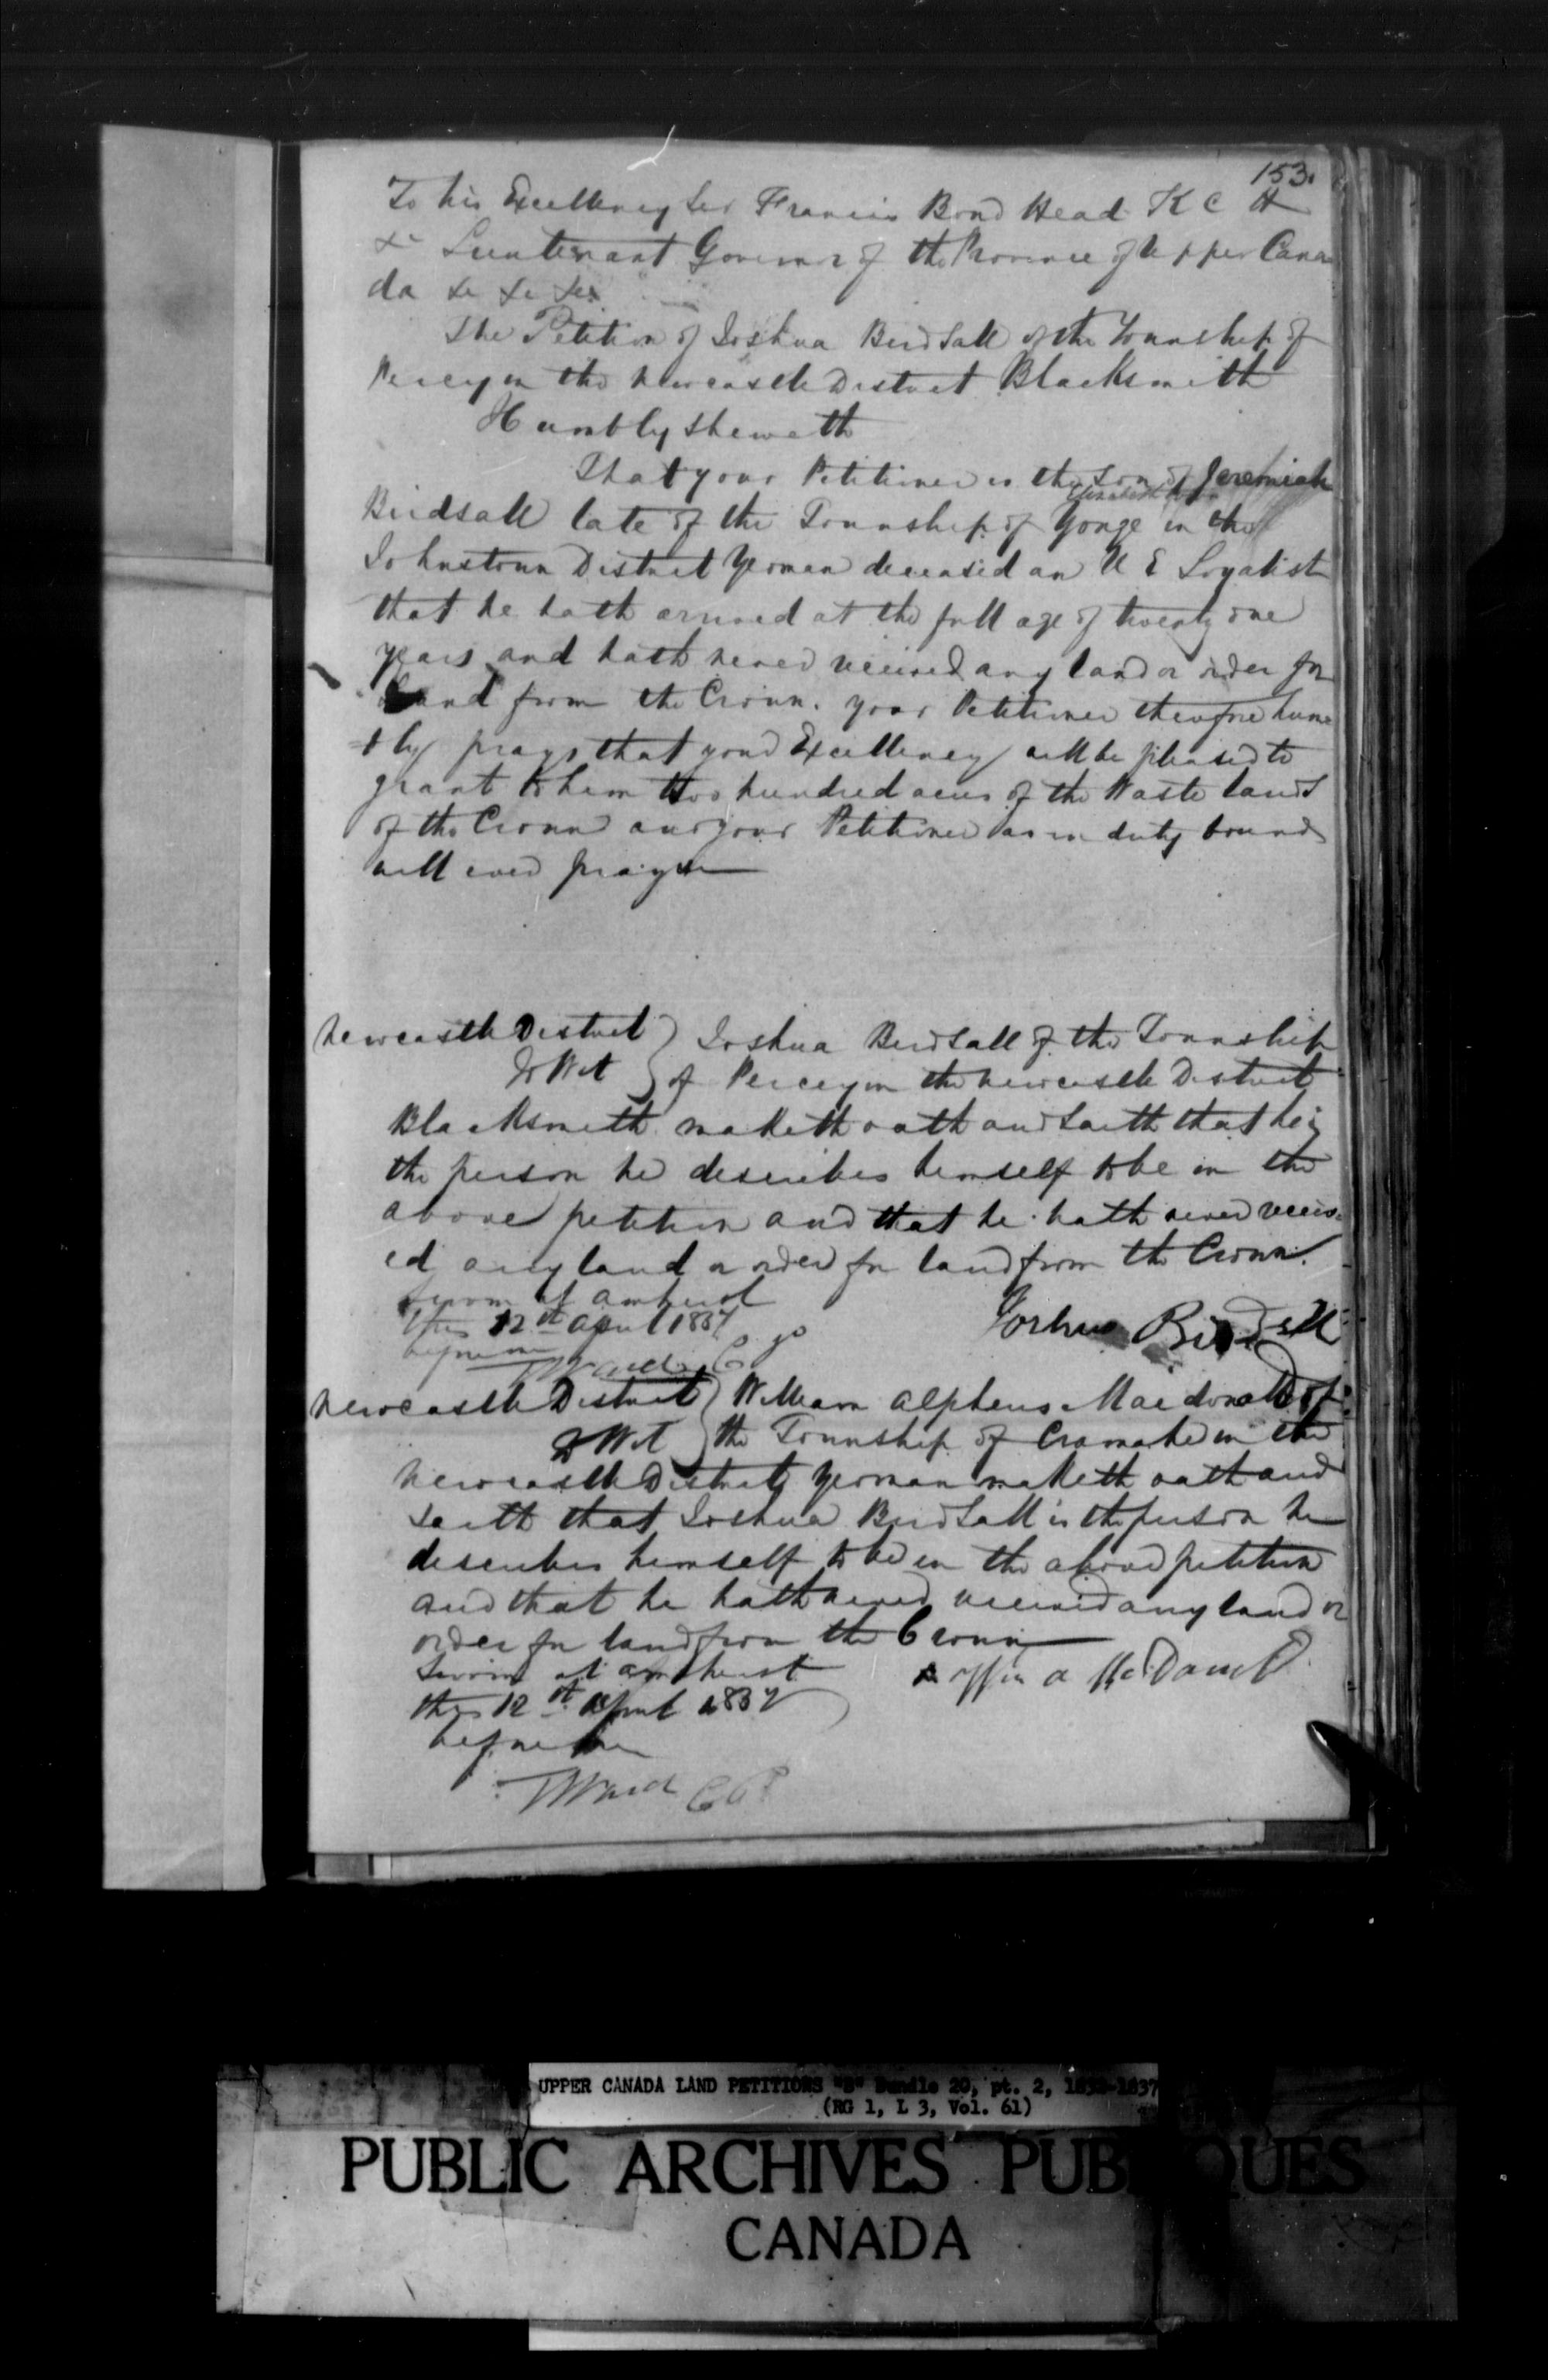 Title: Upper Canada Land Petitions (1763-1865) - Mikan Number: 205131 - Microform: c-1633